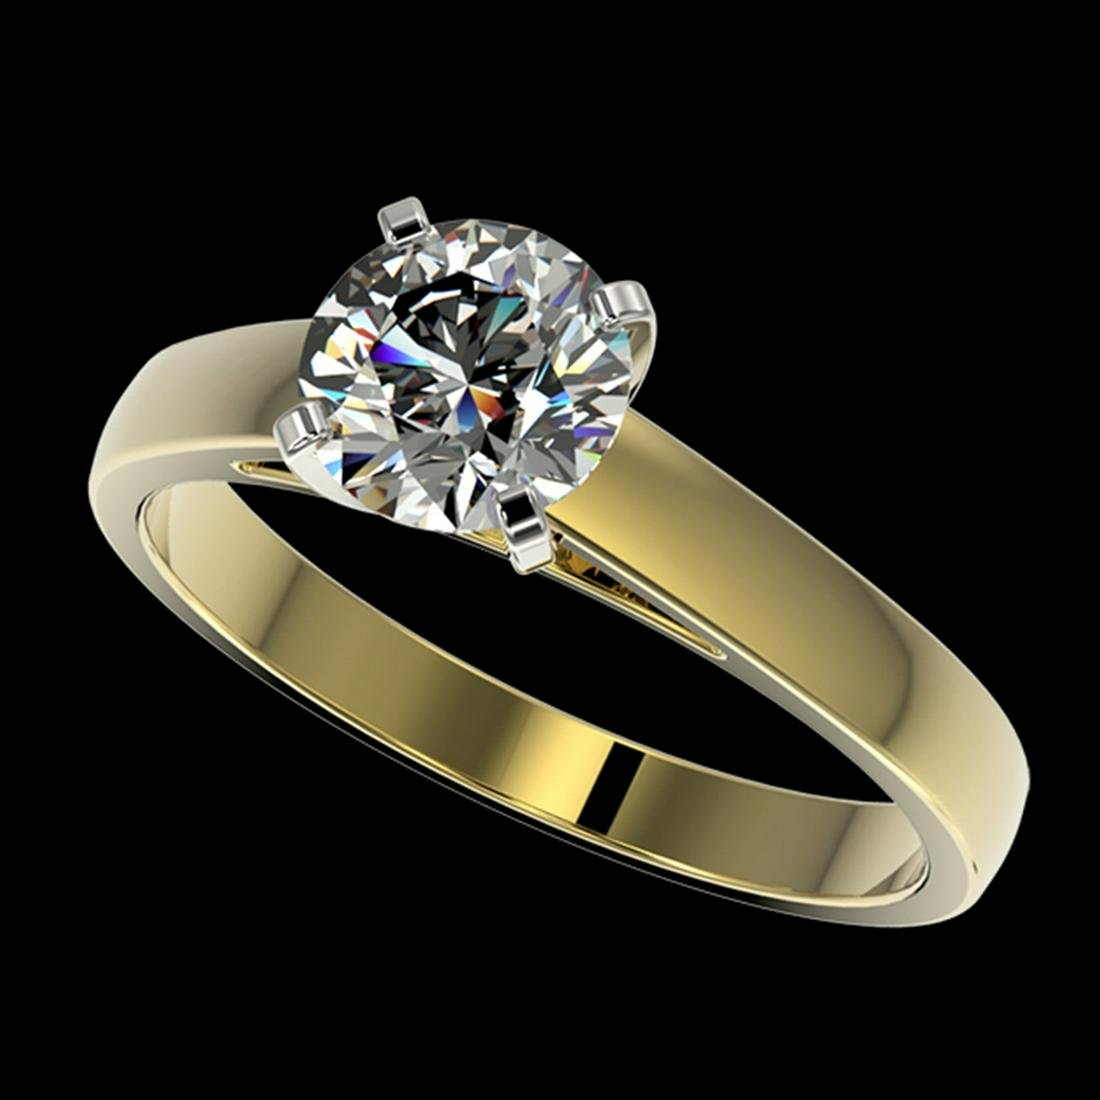 1.26 ctw H-SI/I Diamond Ring 10K Yellow Gold -